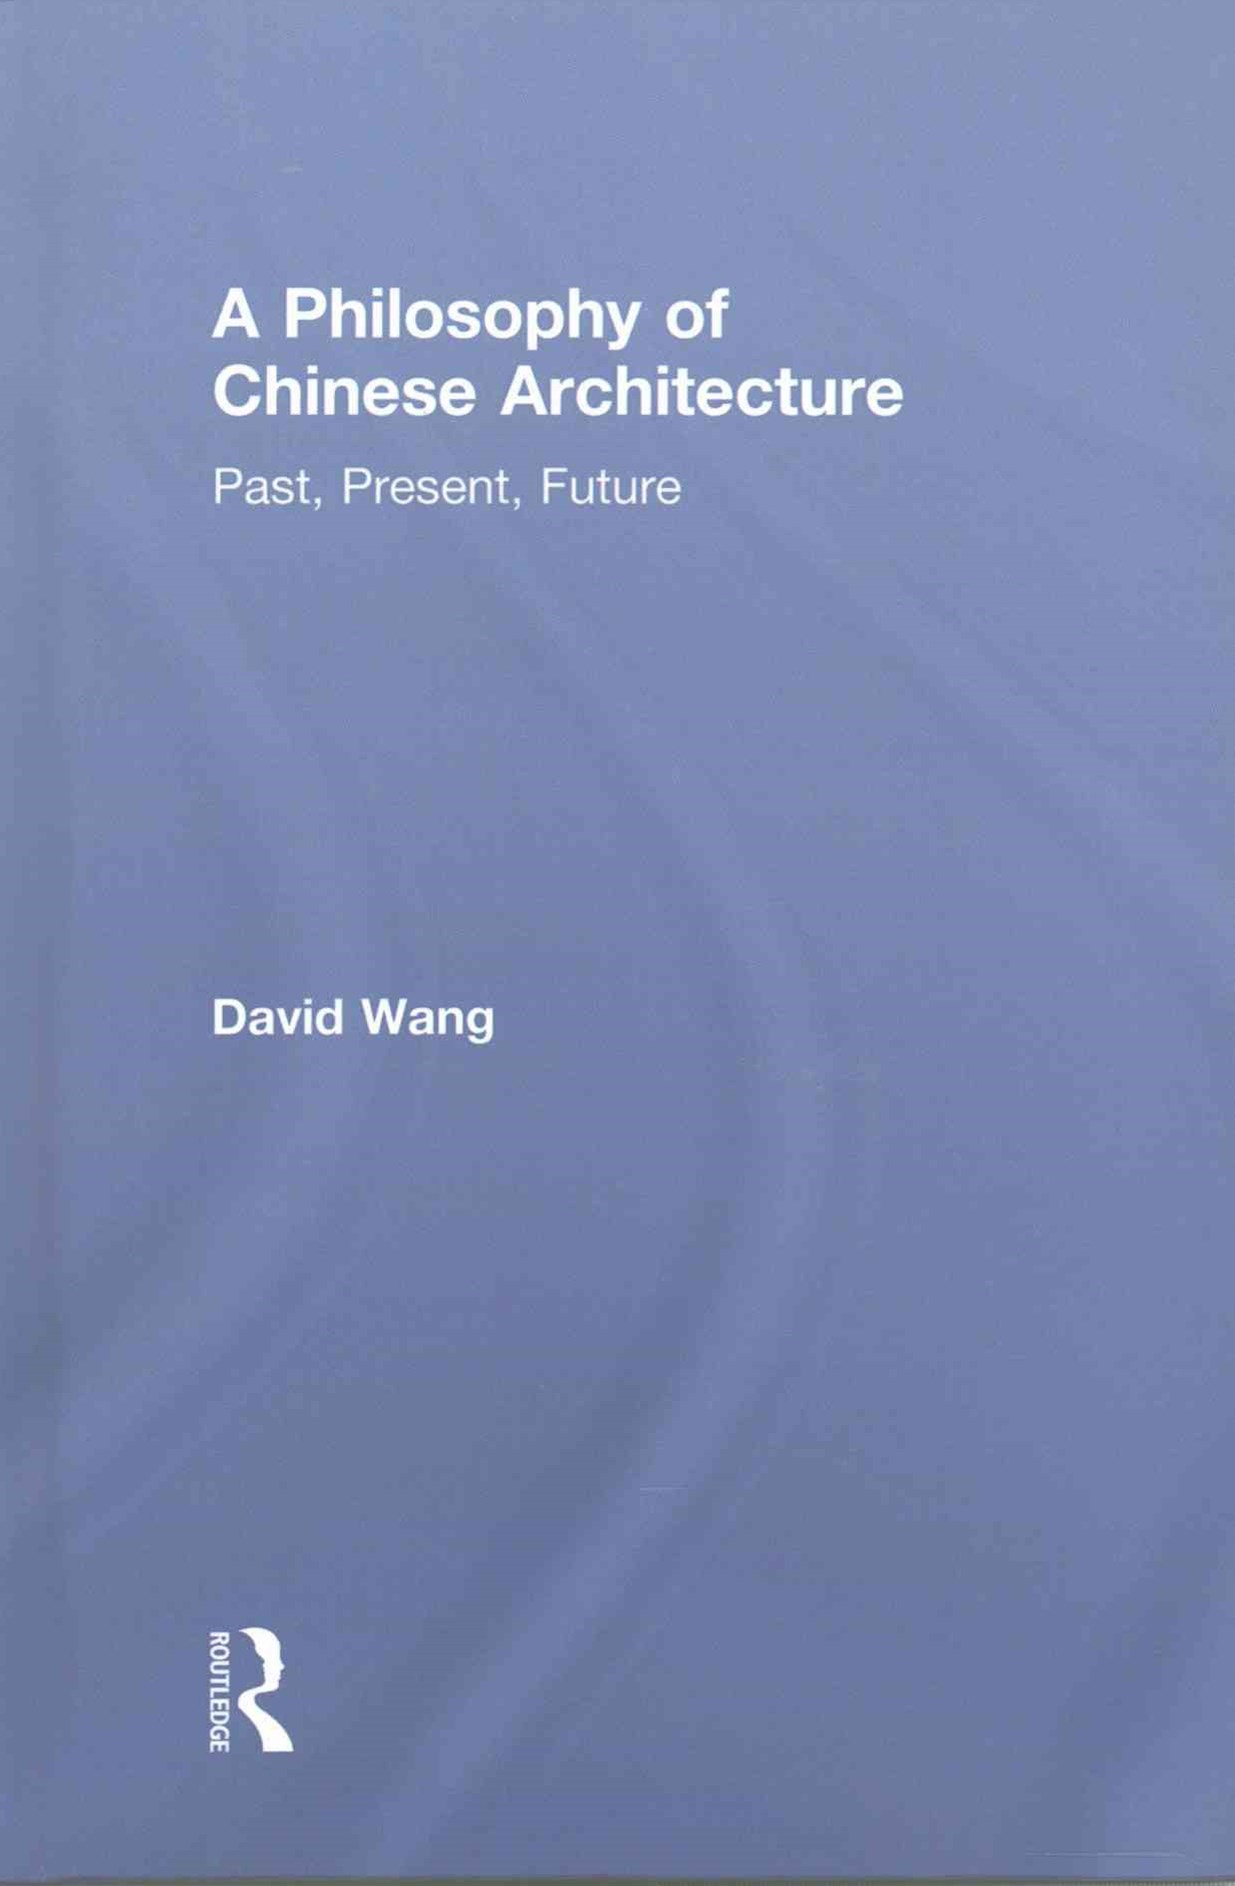 Philosophy of Chinese Architecture